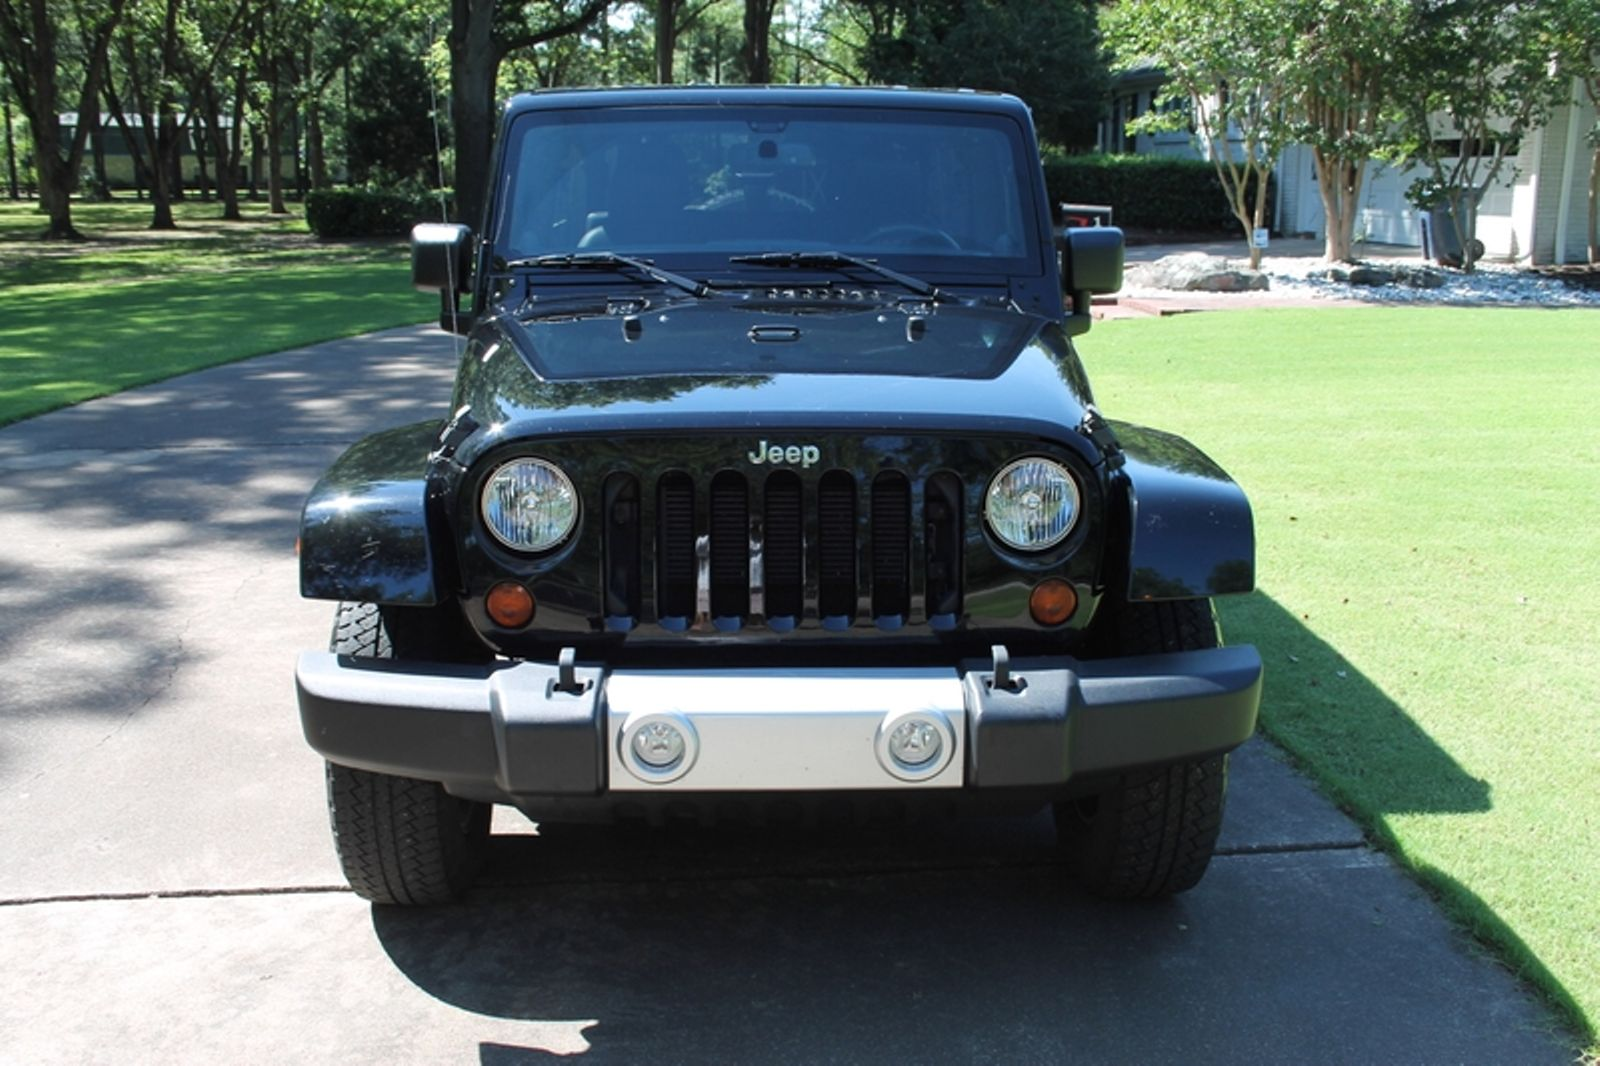 2013 jeep wrangler unlimited sahara price used cars memphis hallum motors citystatezip. Black Bedroom Furniture Sets. Home Design Ideas